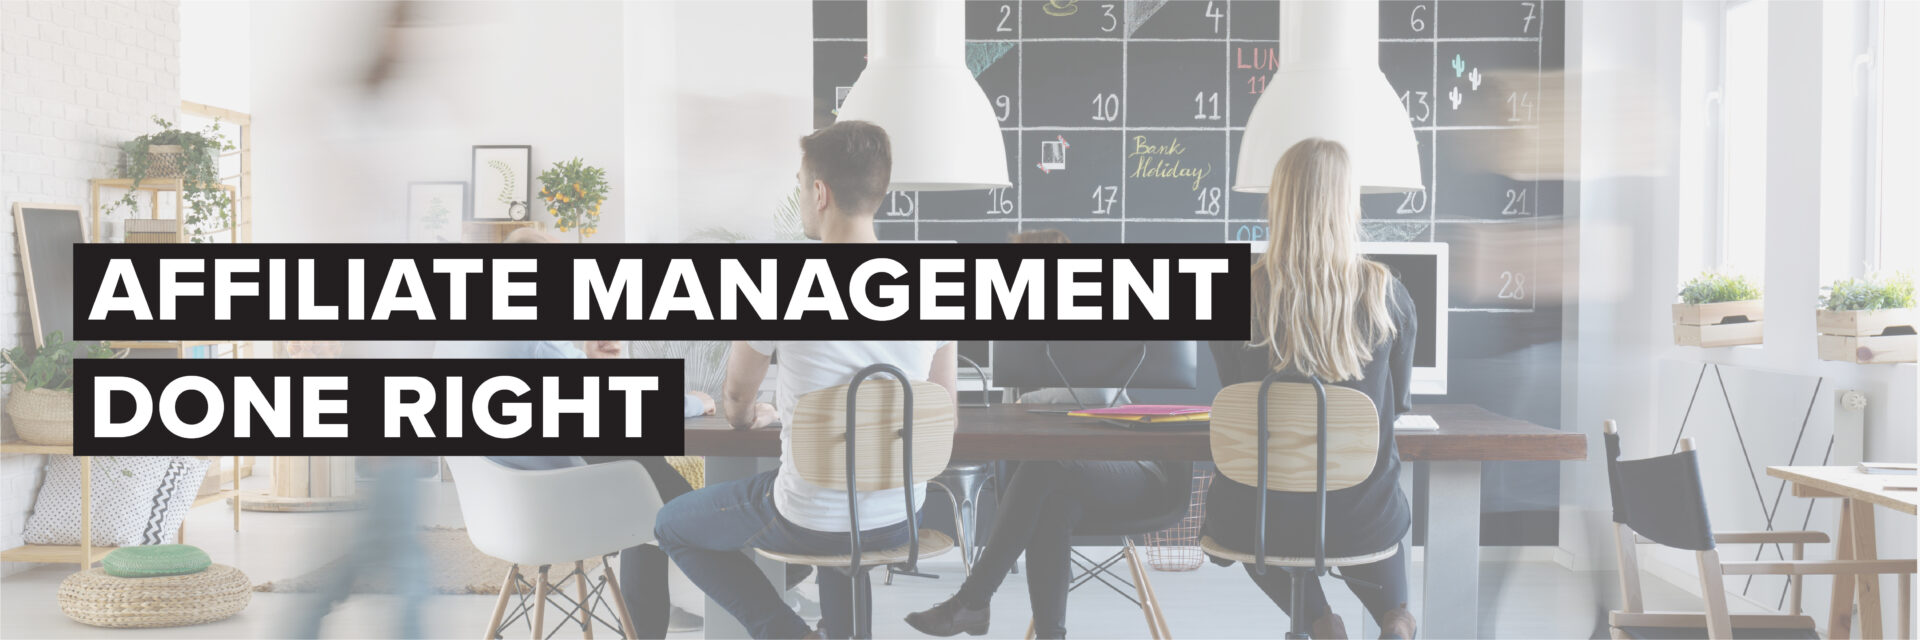 Affiliate Management Done Right